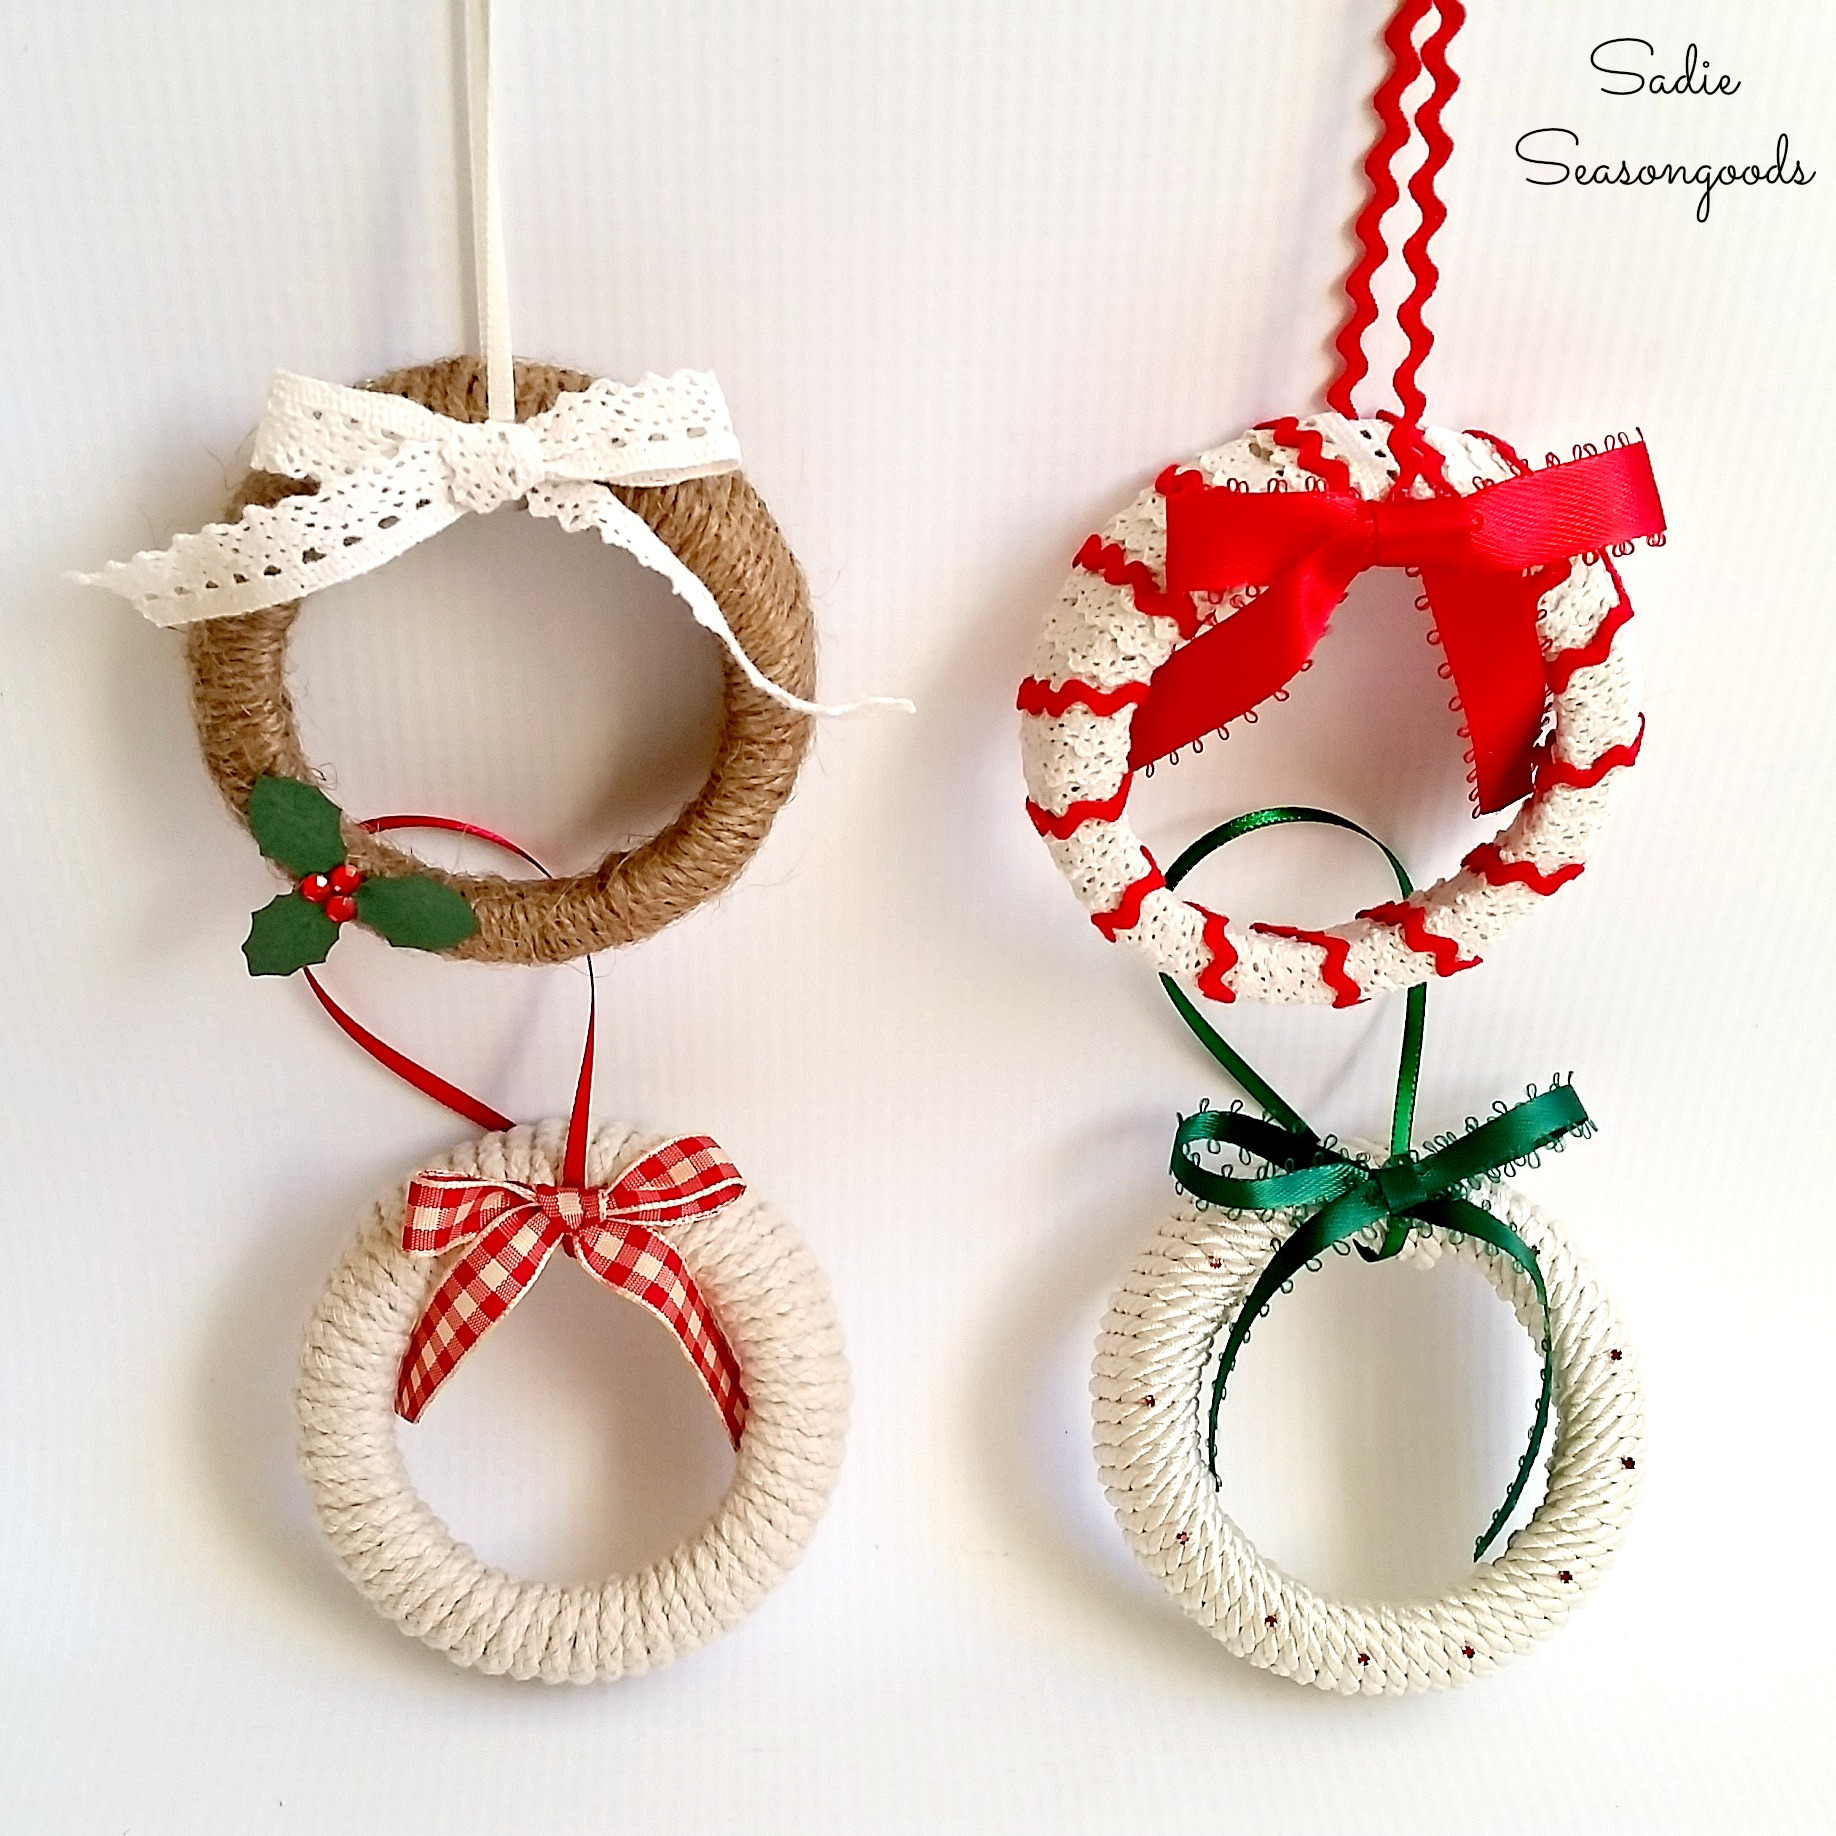 Mason Jar Lid Ornament: These creative handmade ornaments will add a special touch to your Christmas tree this season!